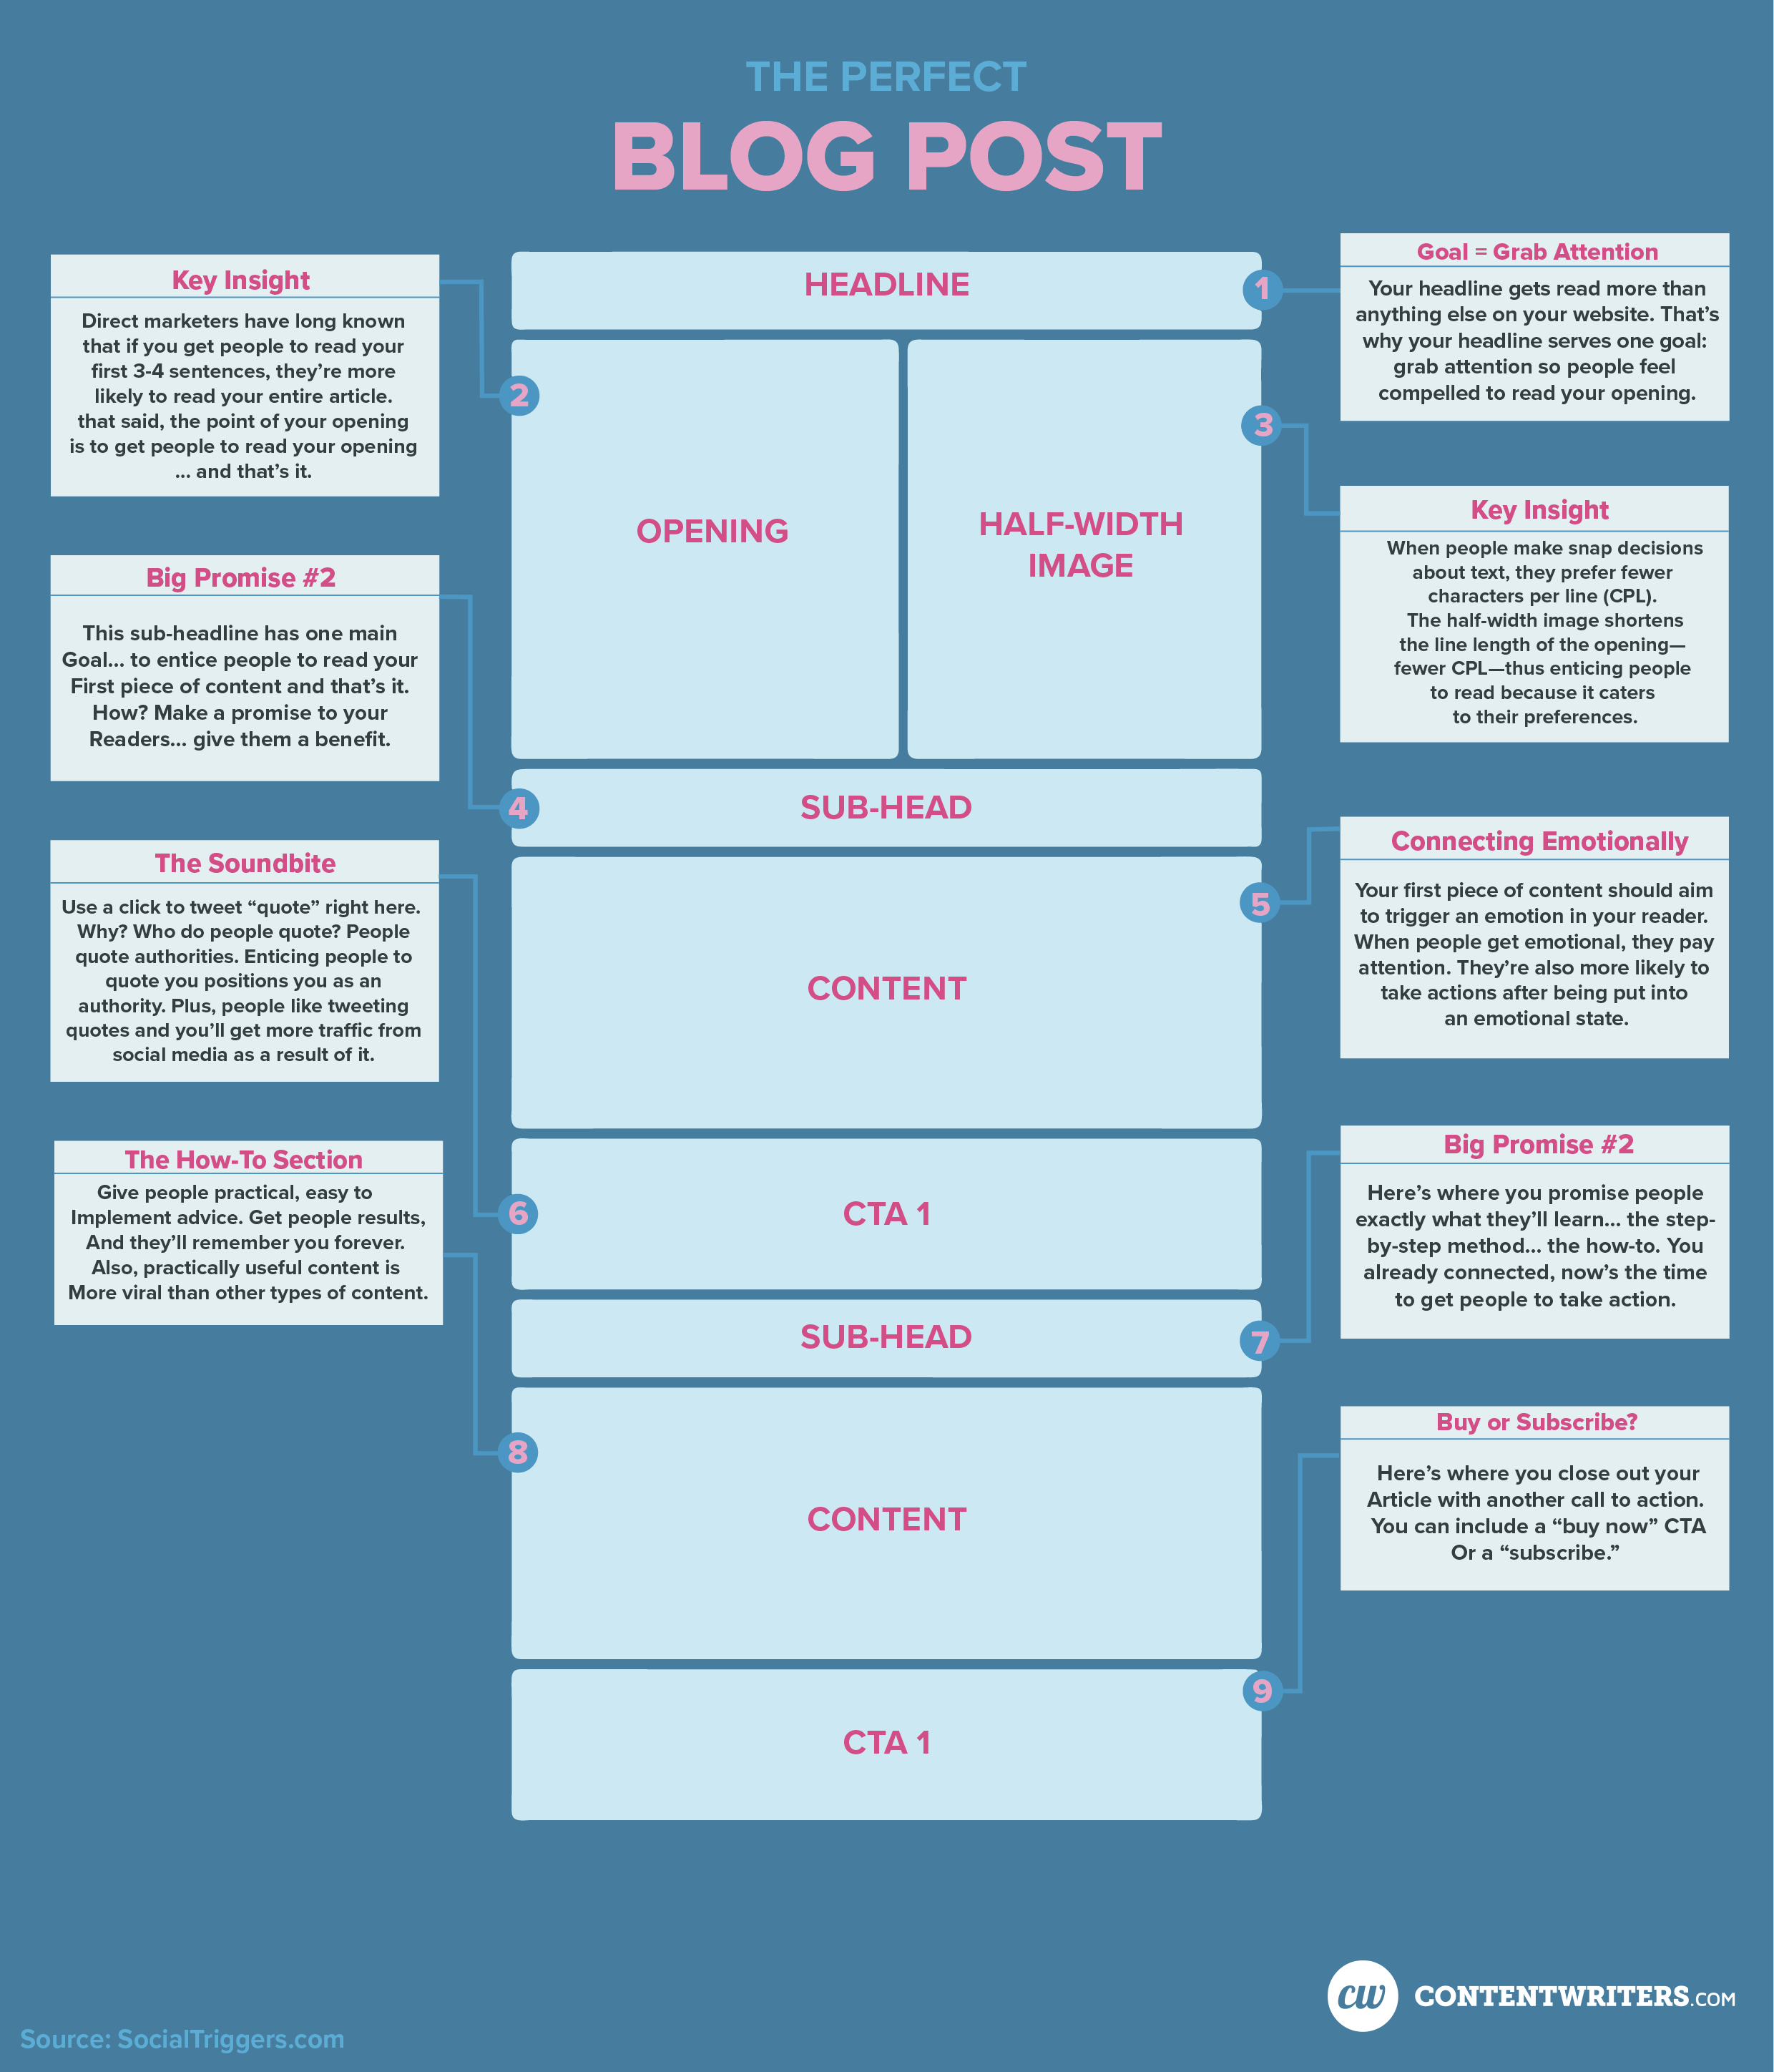 How to make the perfect blog post infographic